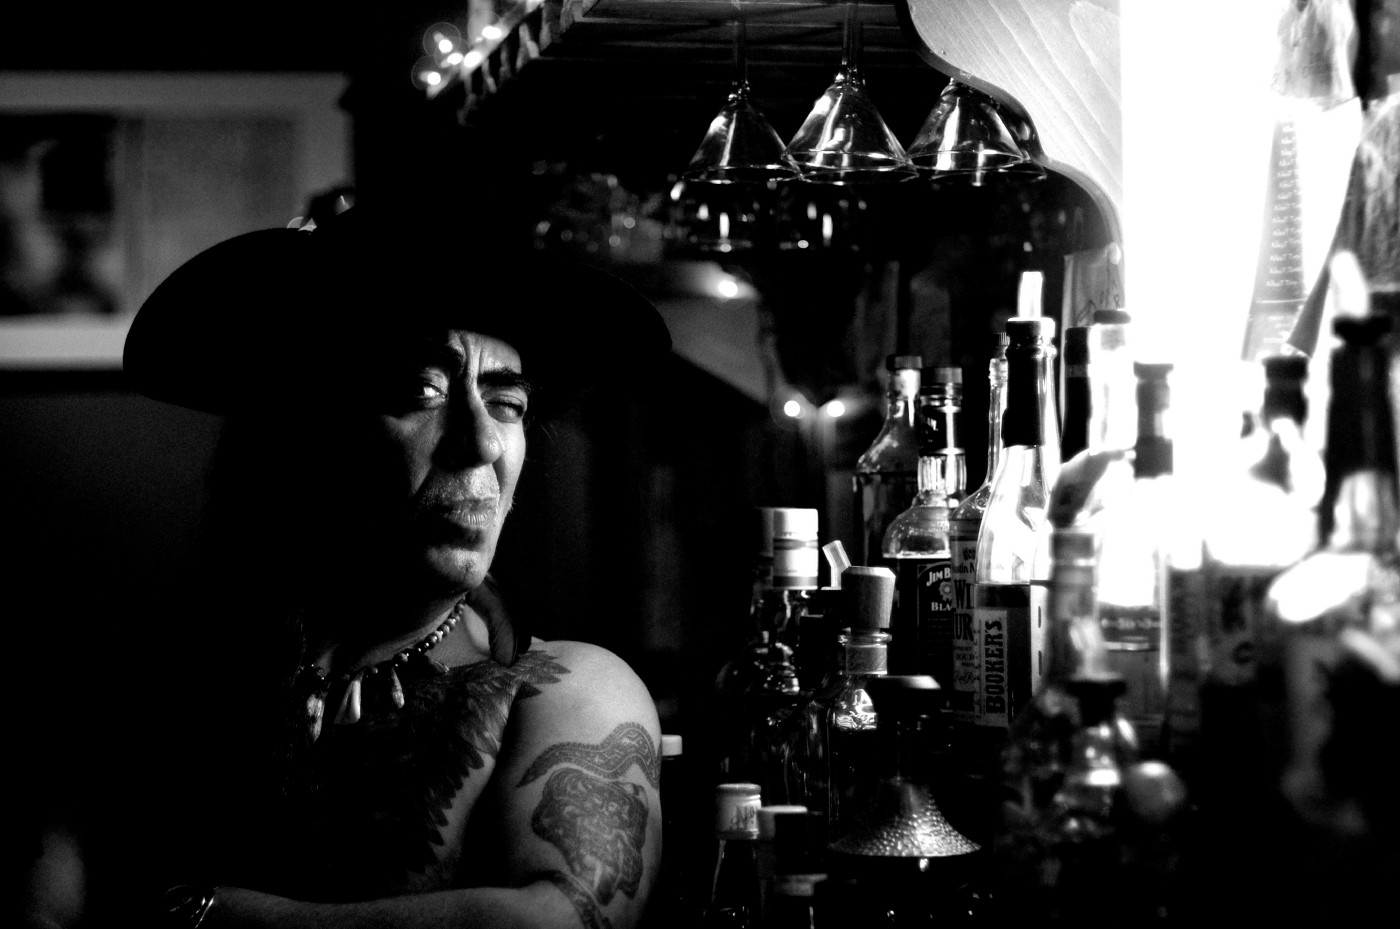 Black and white image of a Native American man sitting at a bar.